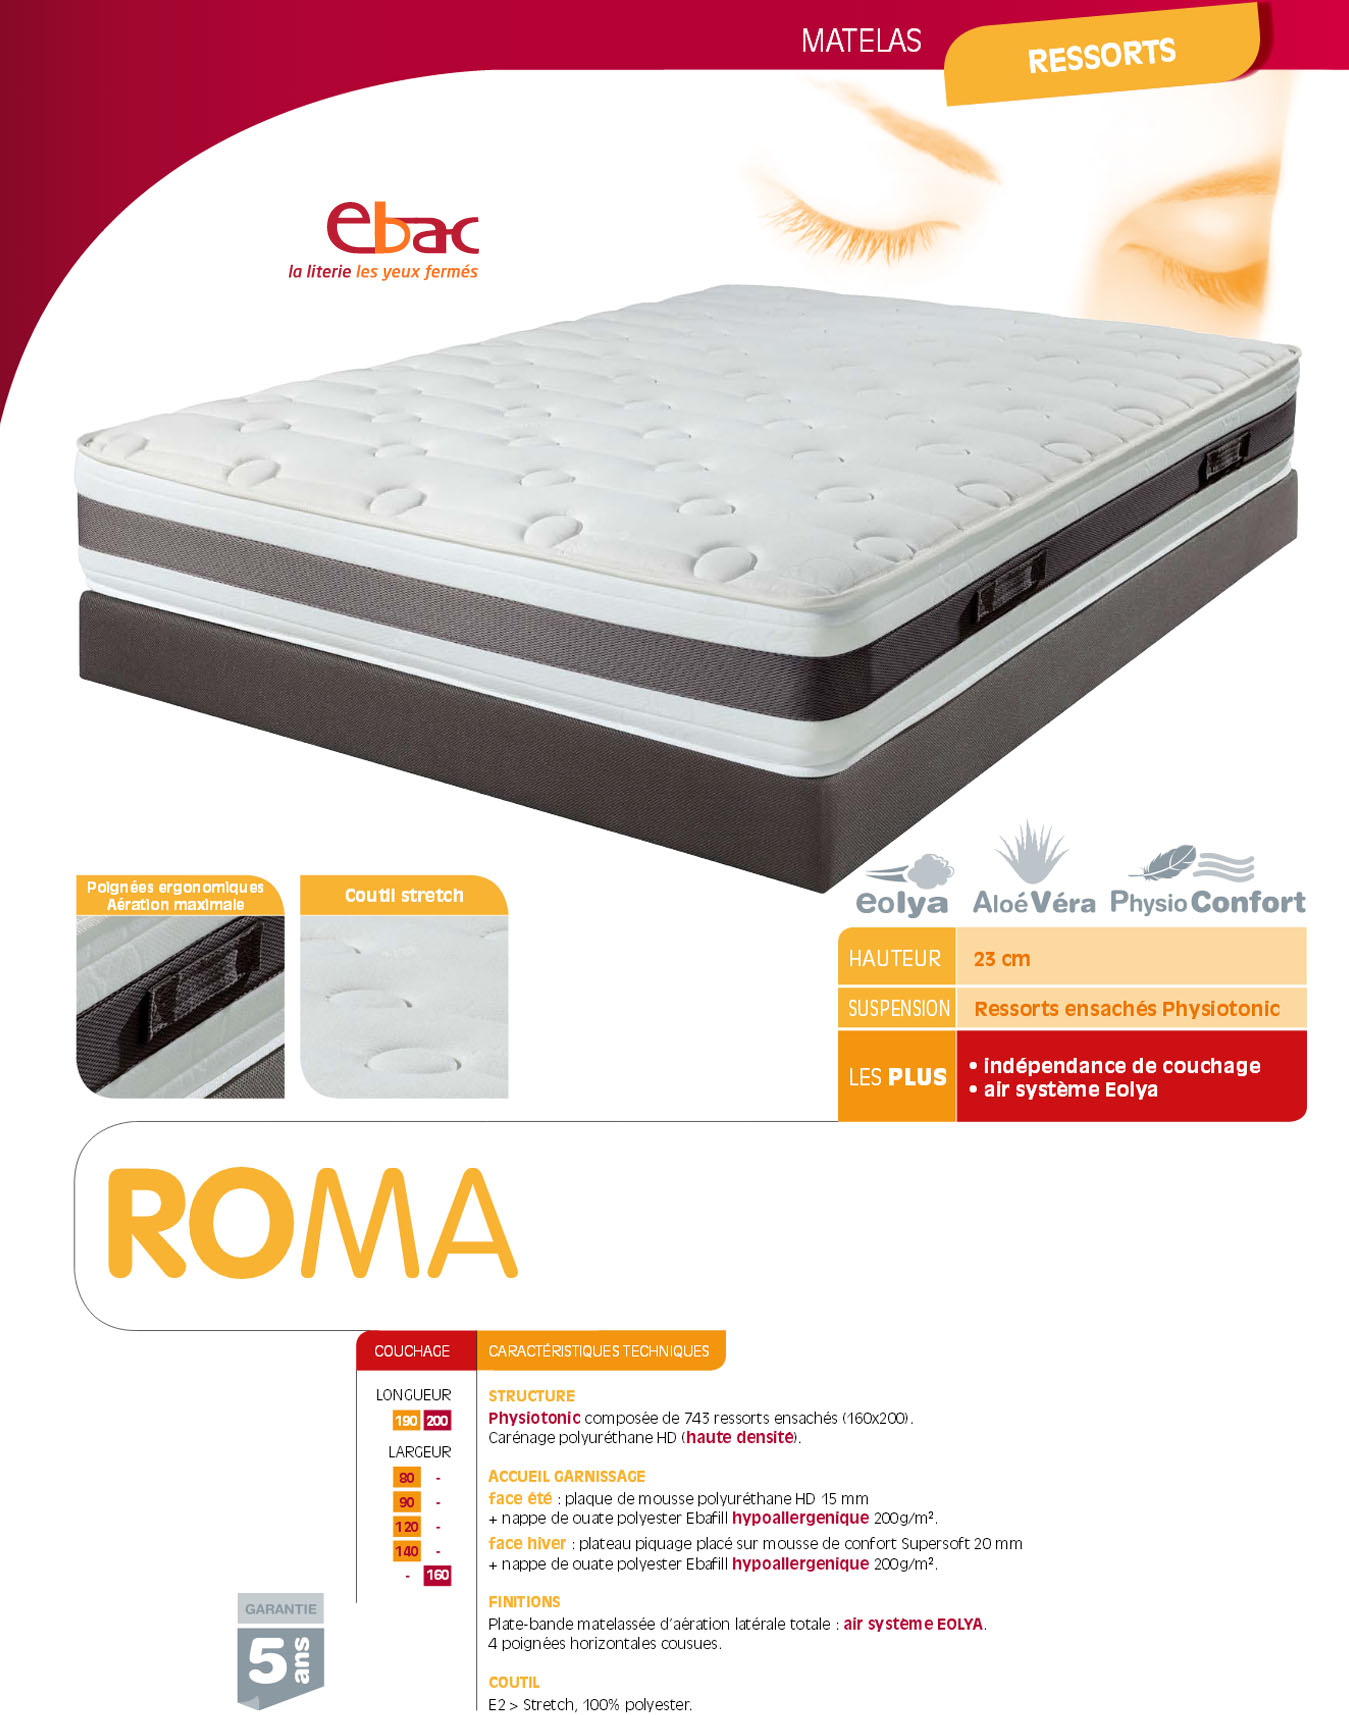 matelas ressorts ebac roma magasin de literie jirdeco la londe var. Black Bedroom Furniture Sets. Home Design Ideas